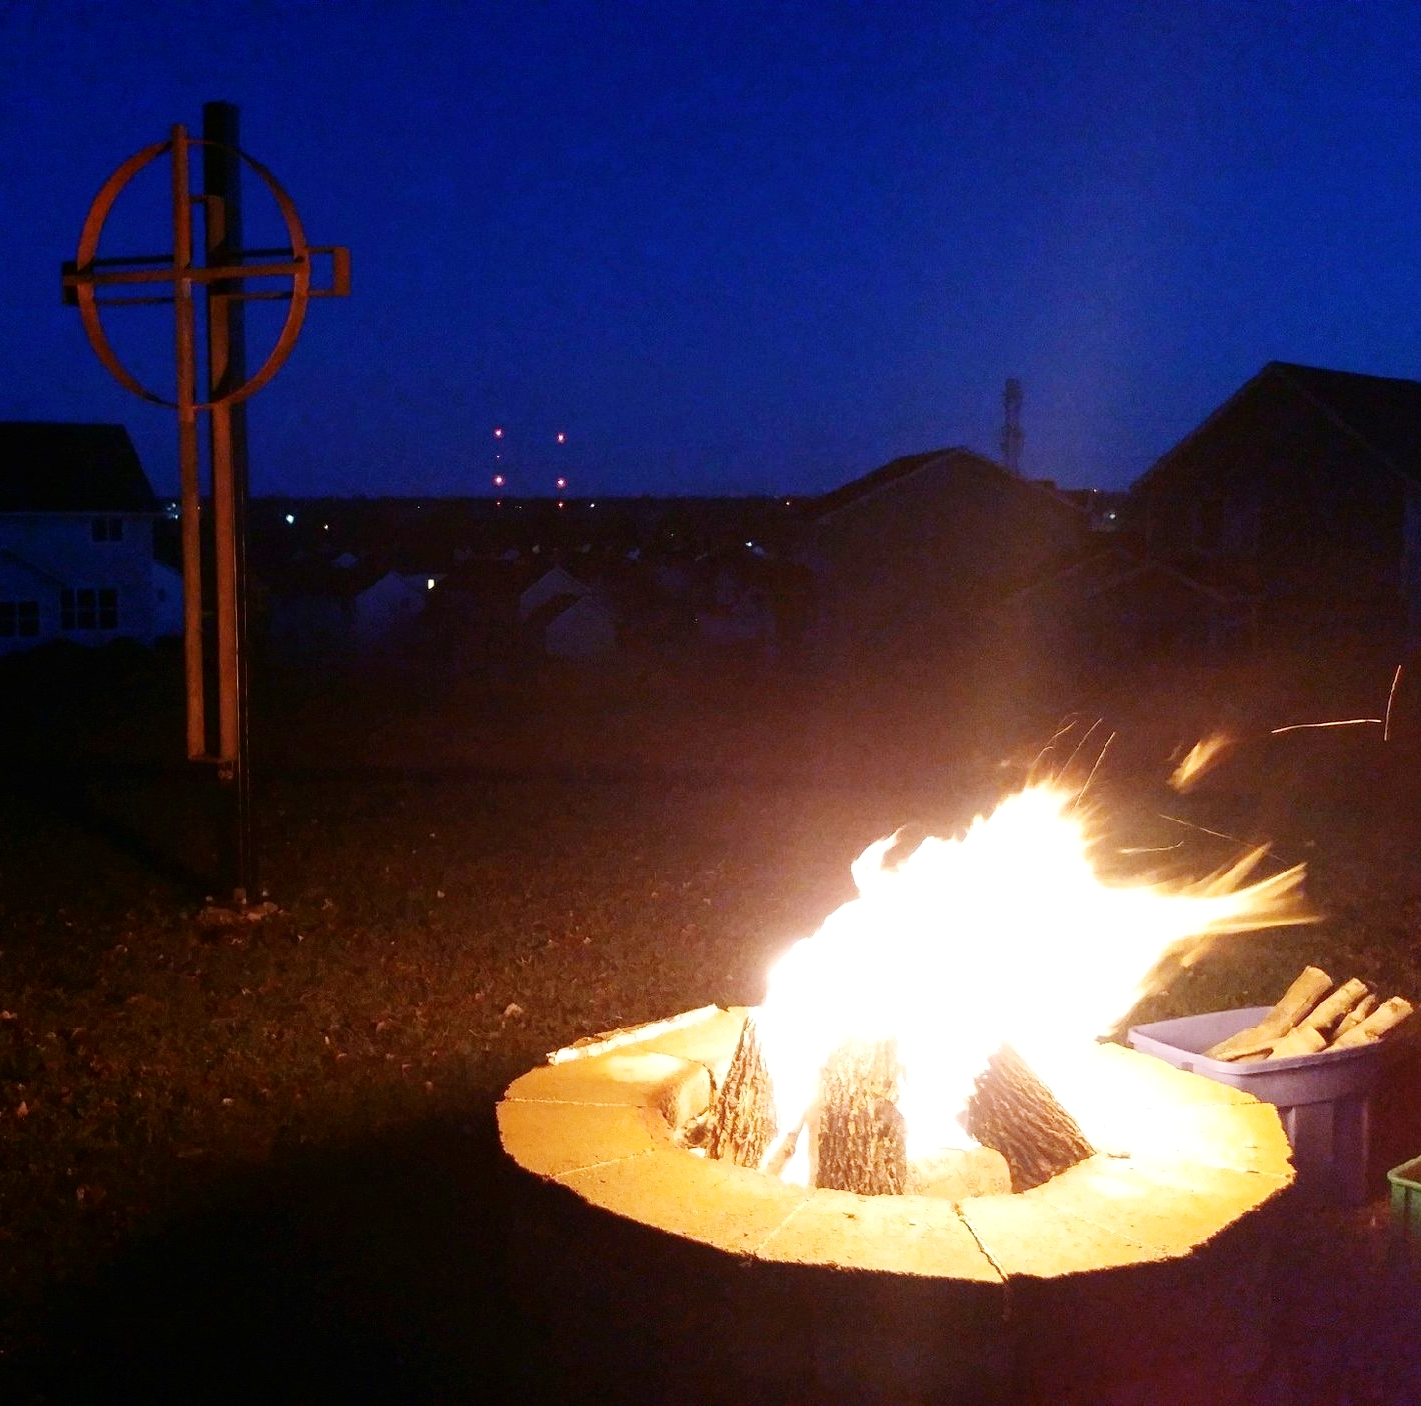 Photo taken at the Easter Sunrise worship - just before dawn and the Easter message was proclaimed.